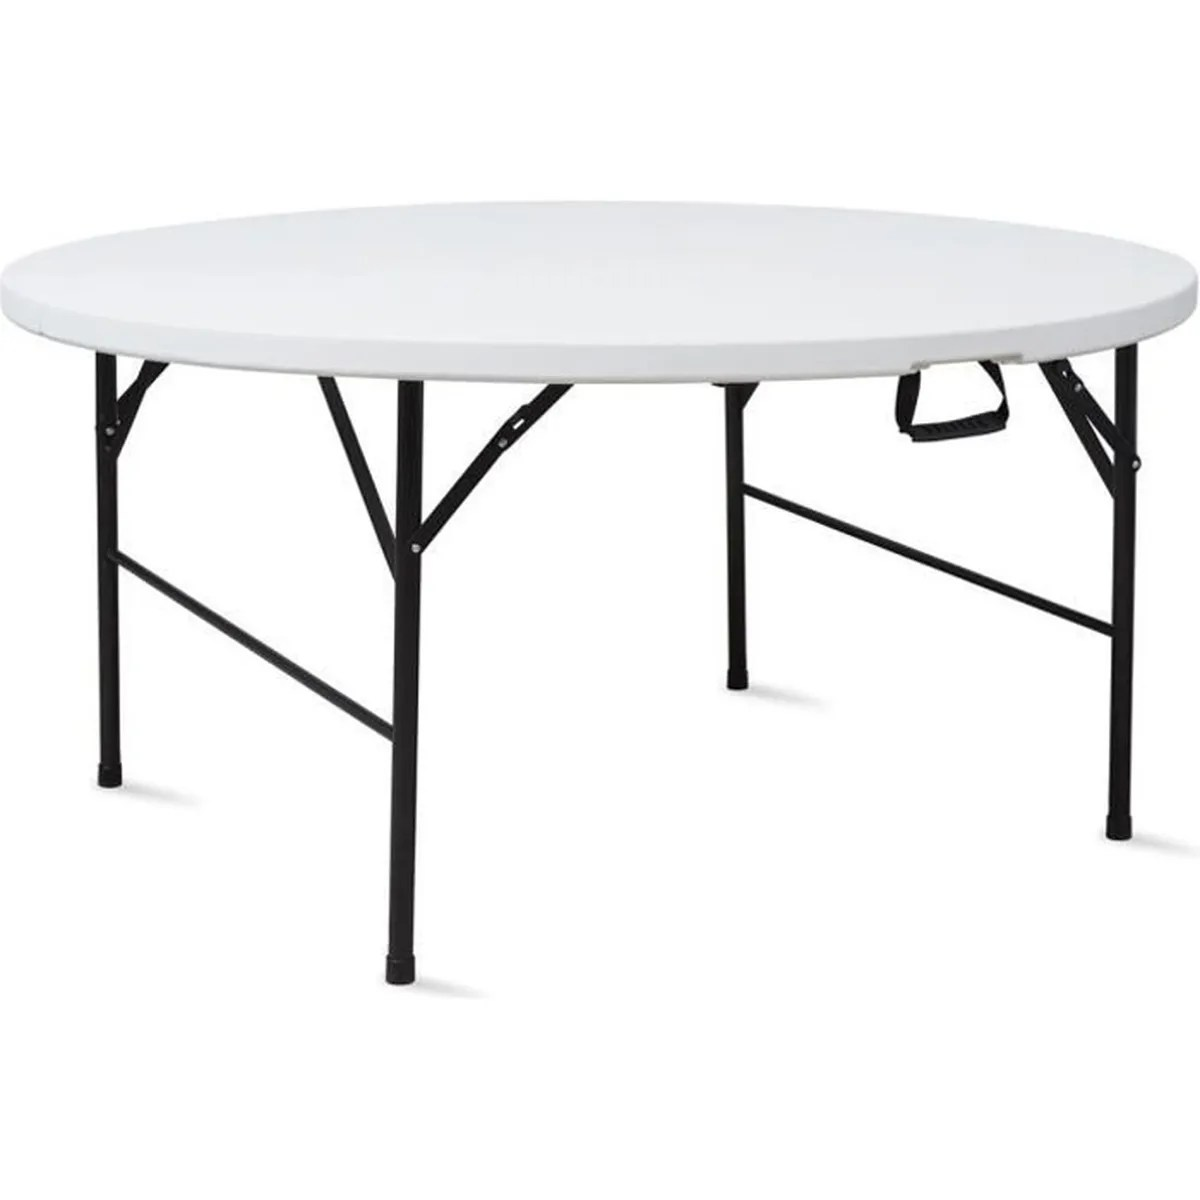 Table Pvc Exterieur Table Pliante Ronde 180 Cm Portable Achat Vente Table De